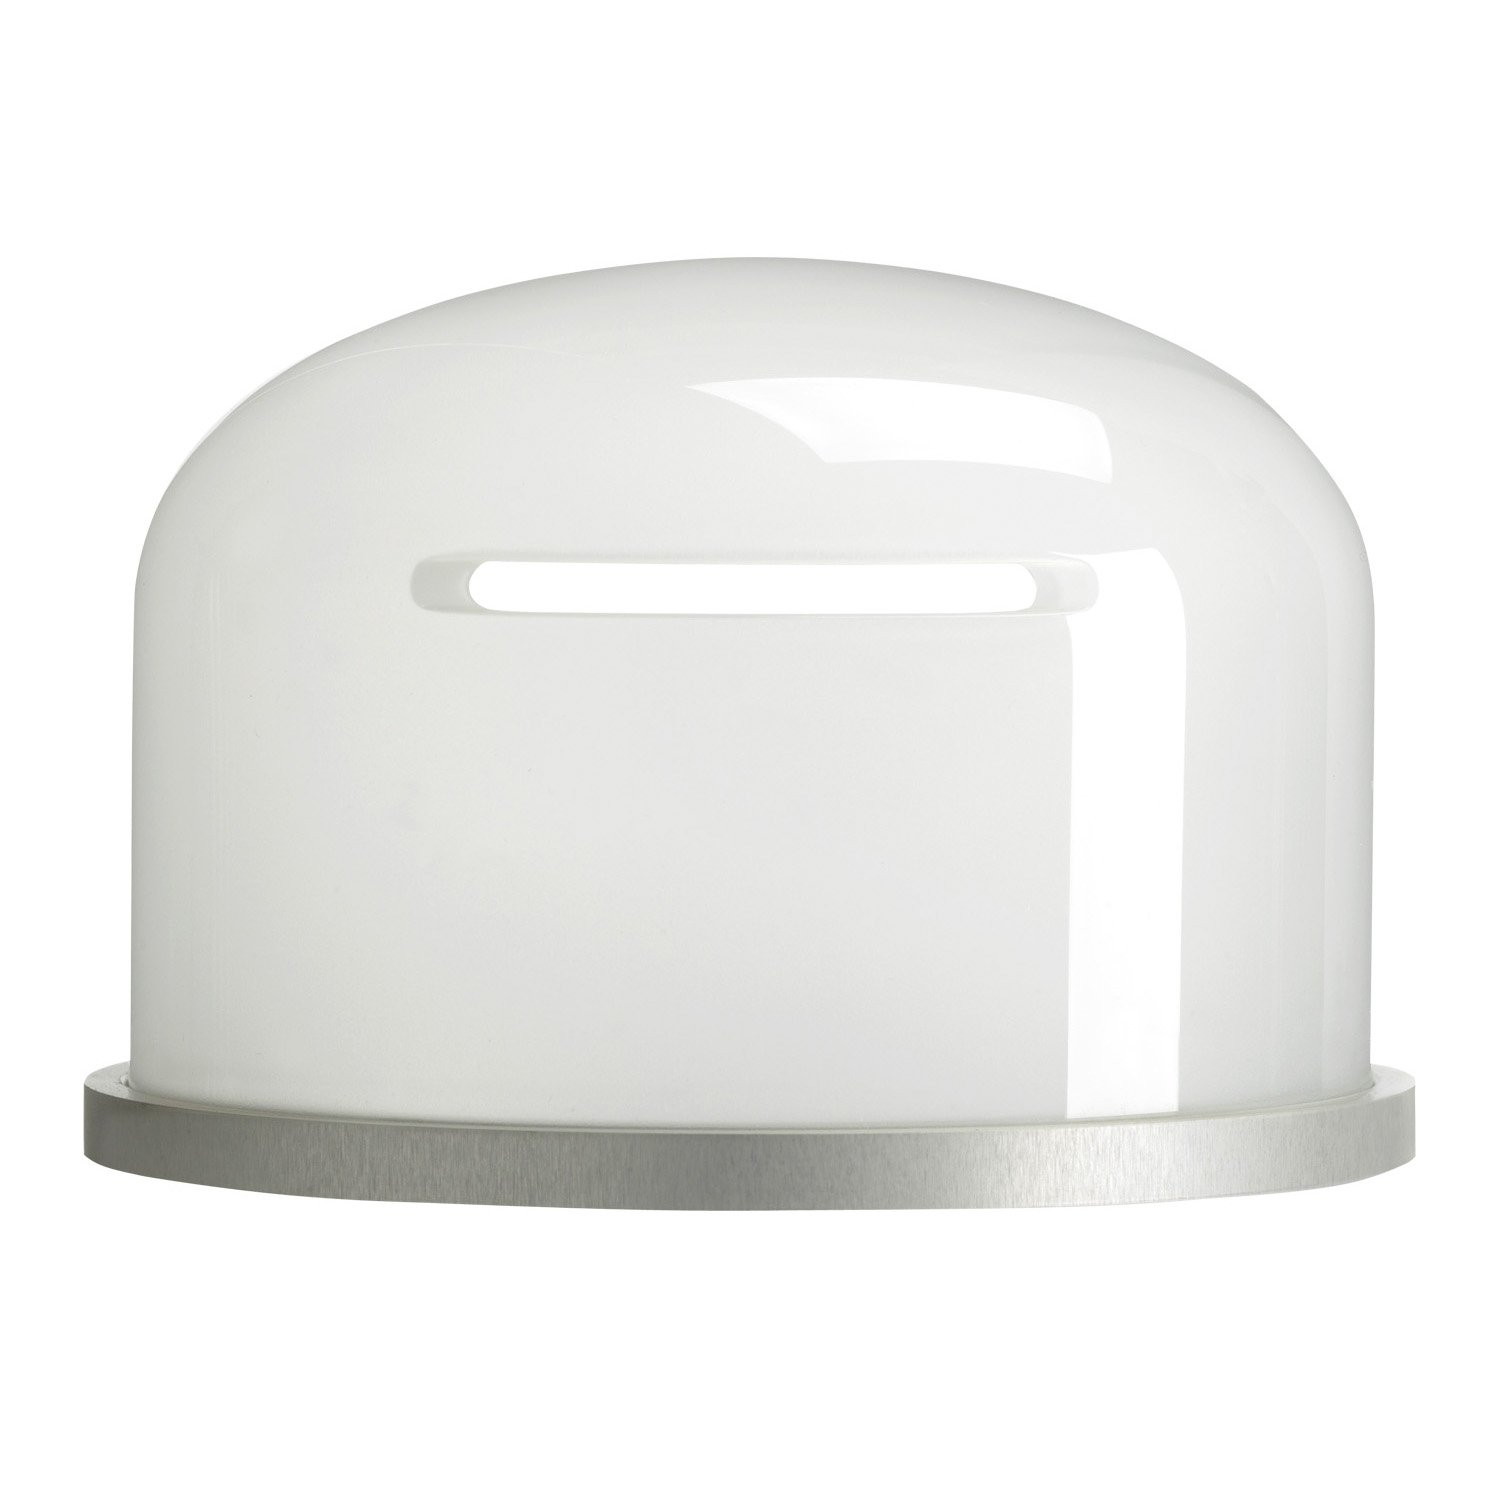 Profoto 101561 Glass Dome Frosted for D1 & B1